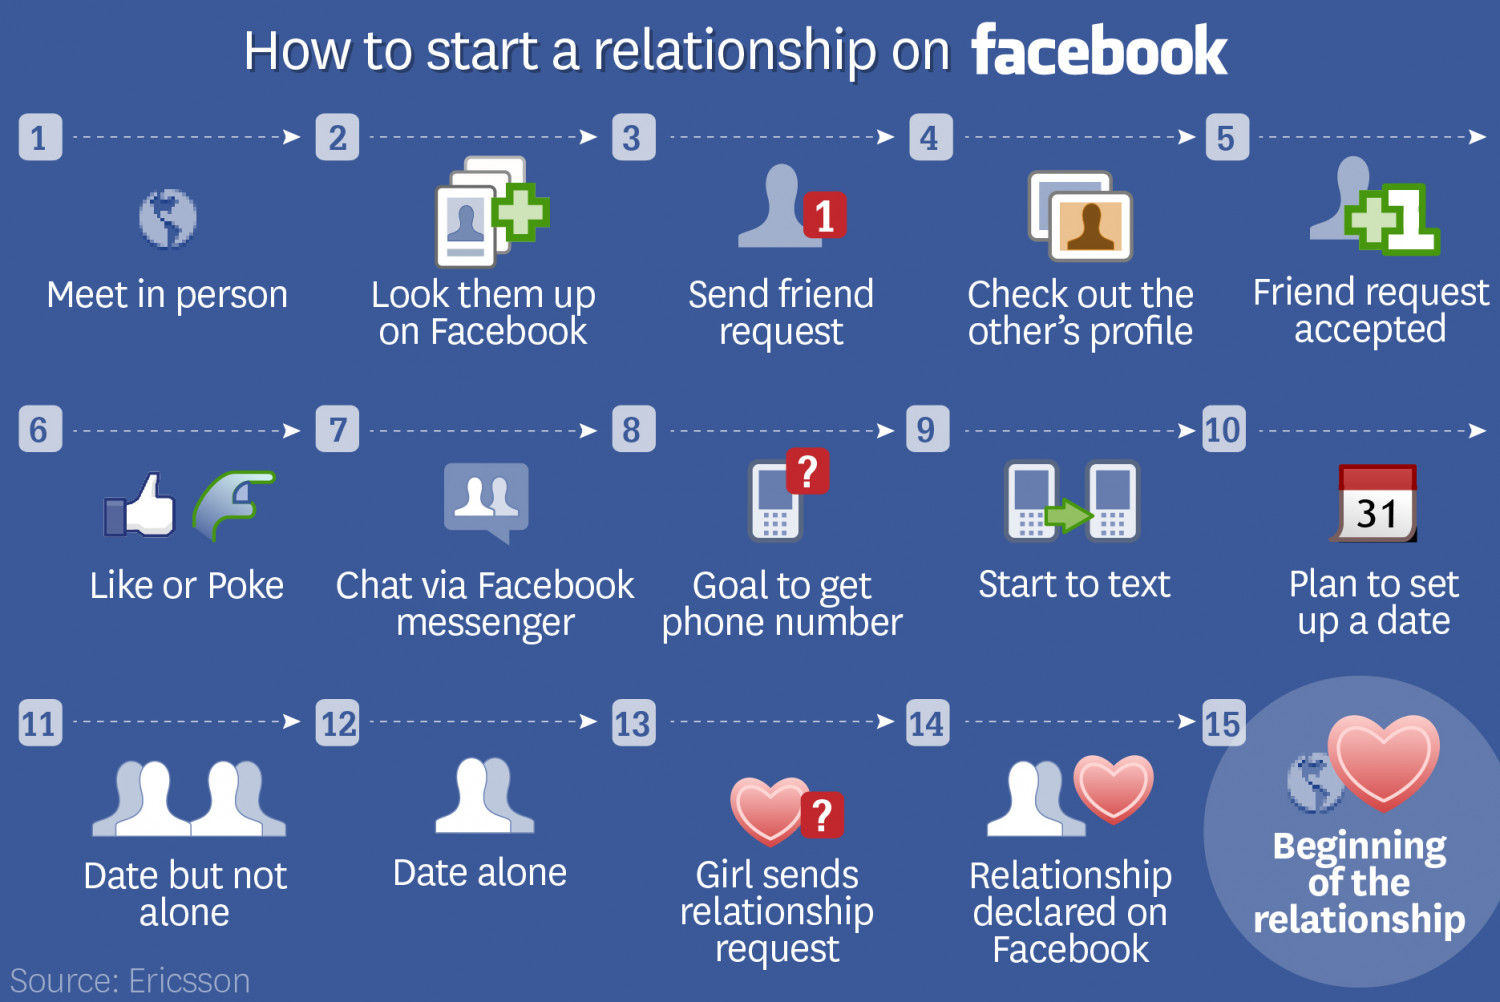 To start a relationship